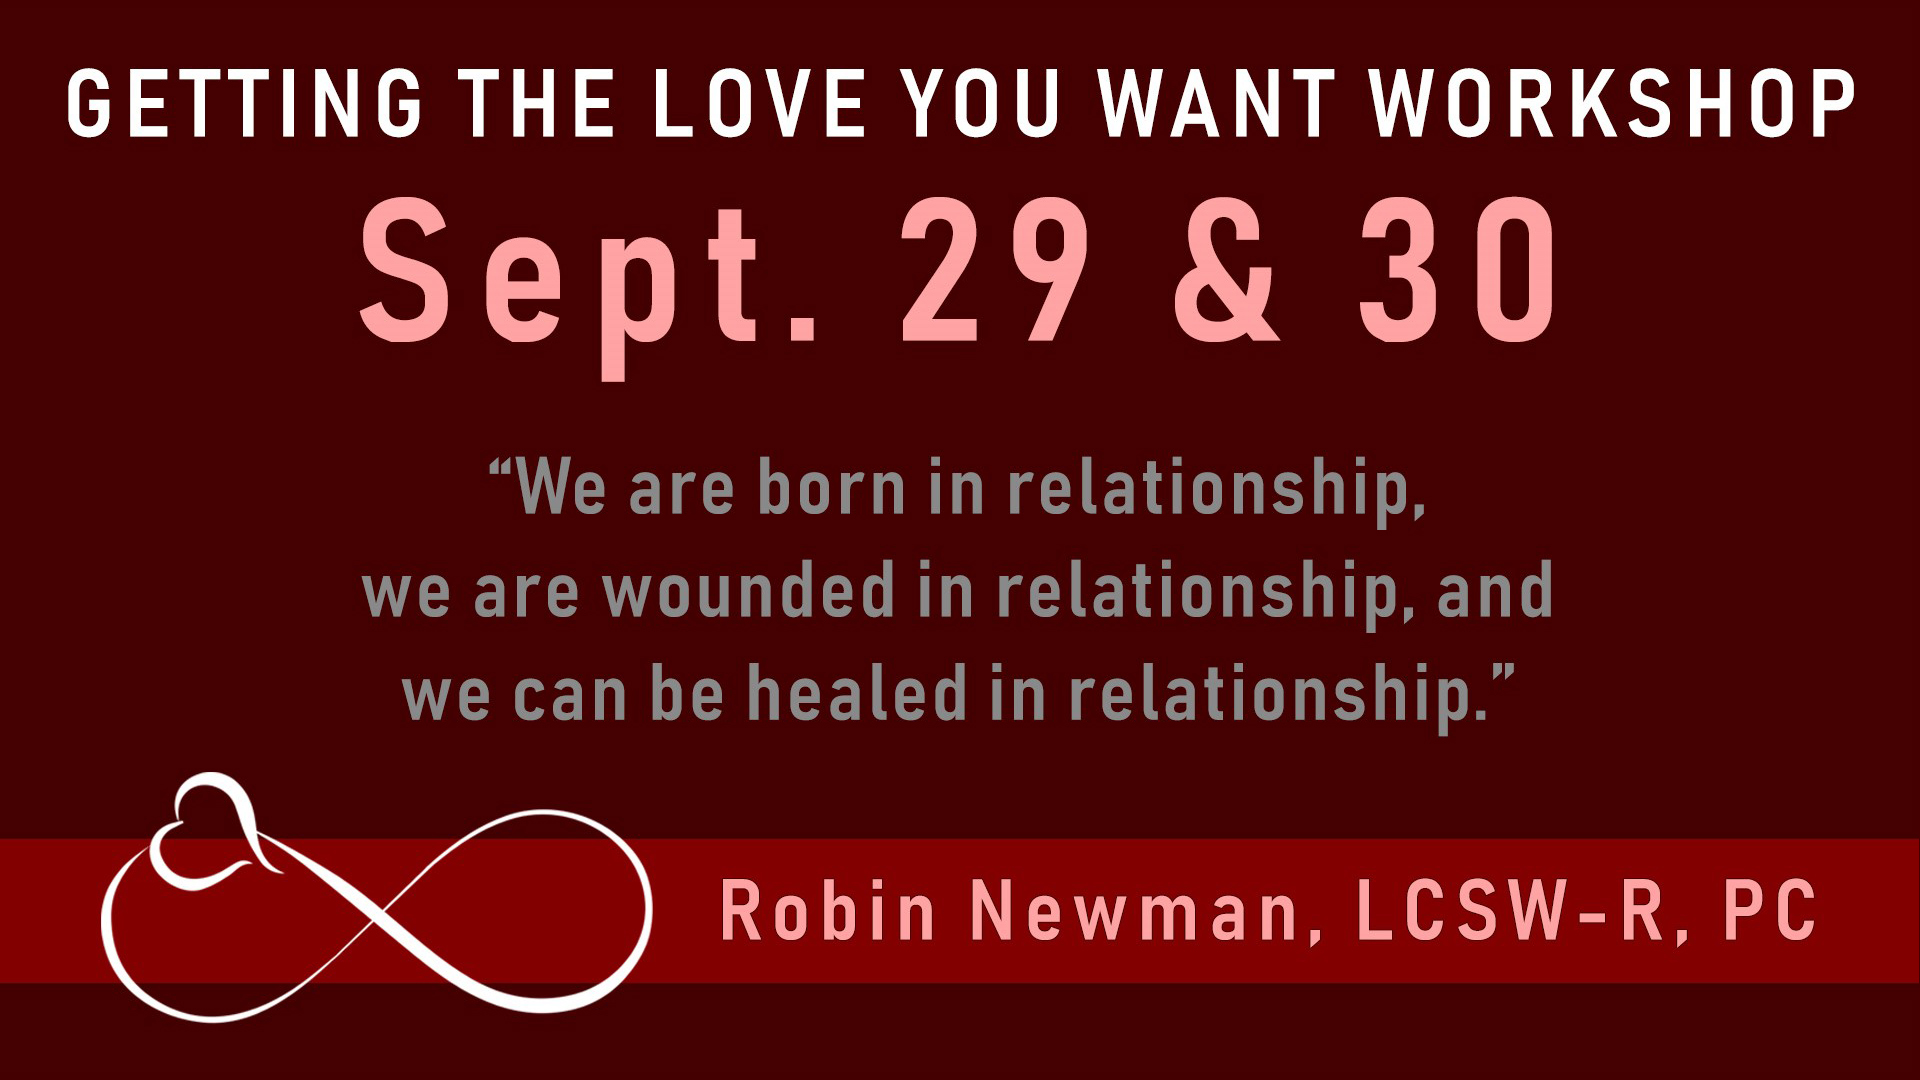 couples workshop Sept 29 & 30, 2018 Long Island